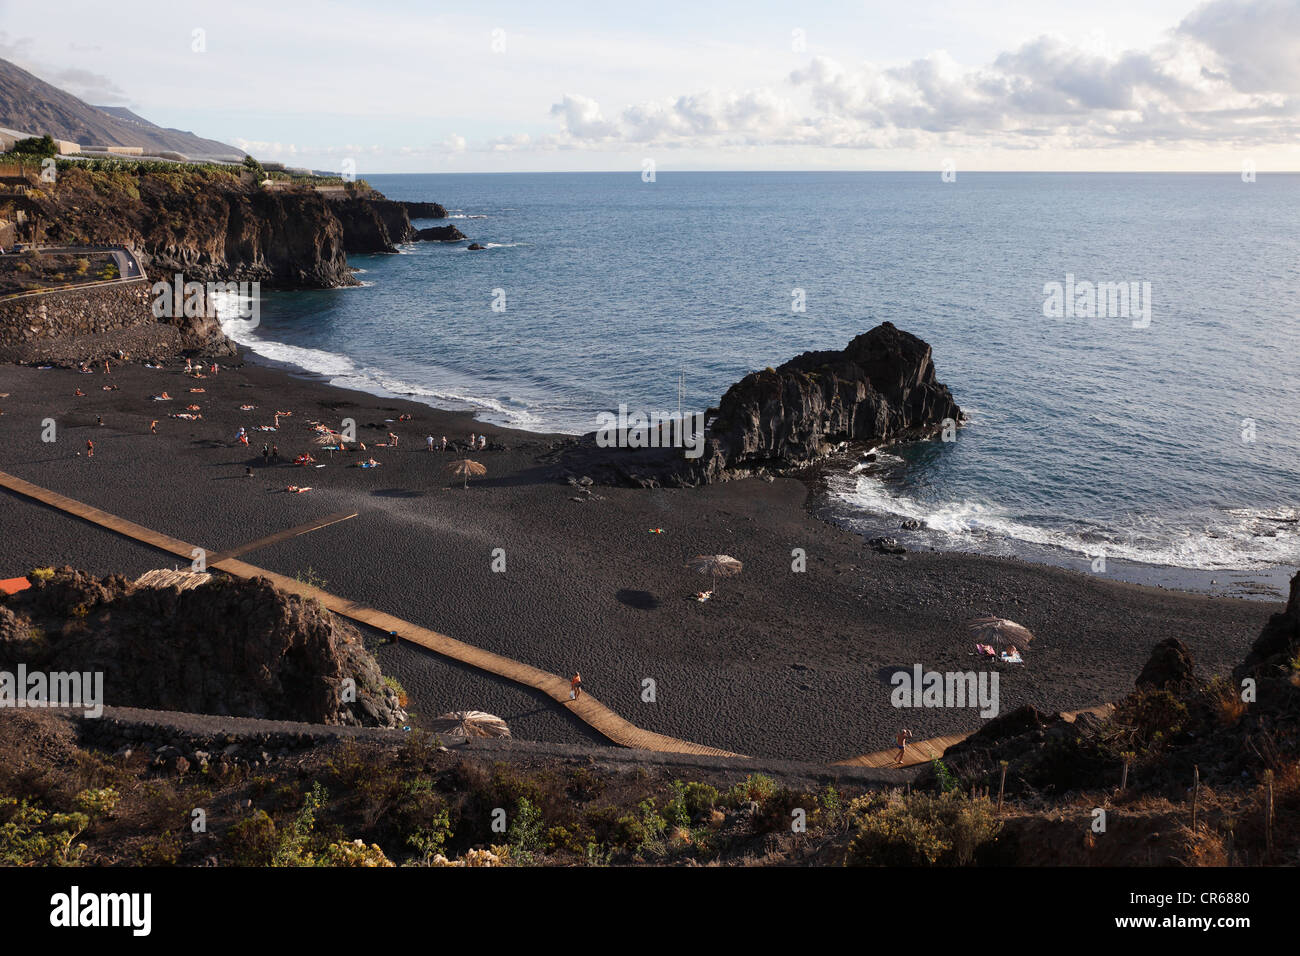 Spain, La Palma, People at Charco Verde Beach - Stock Image